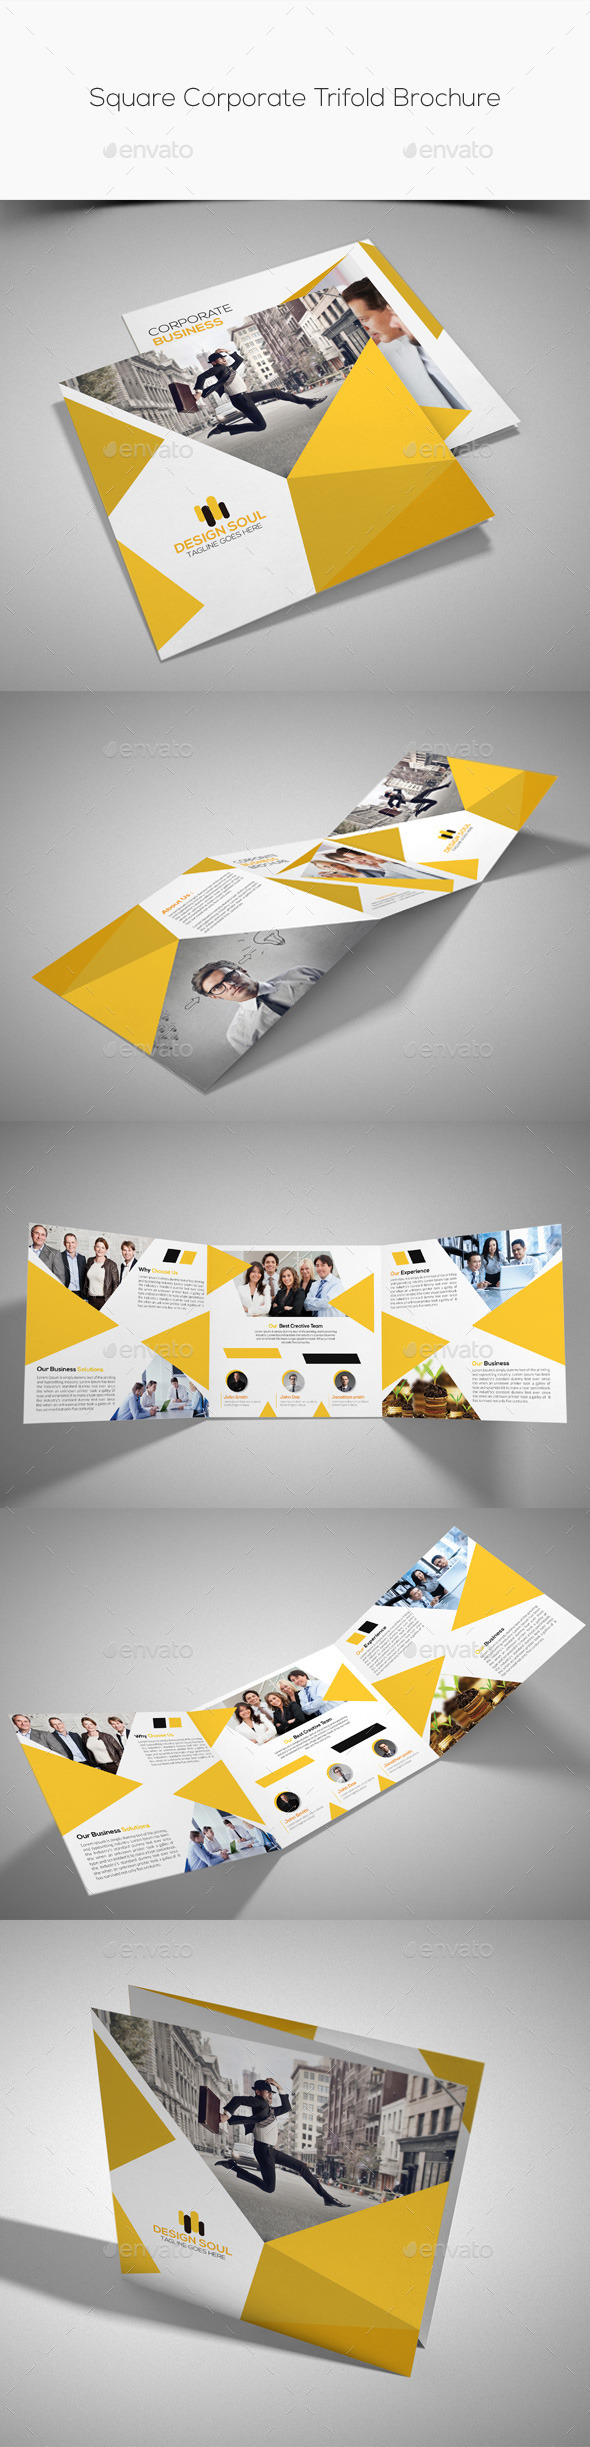 GraphicRiver Square Corporate Trifold Brochure 10813519